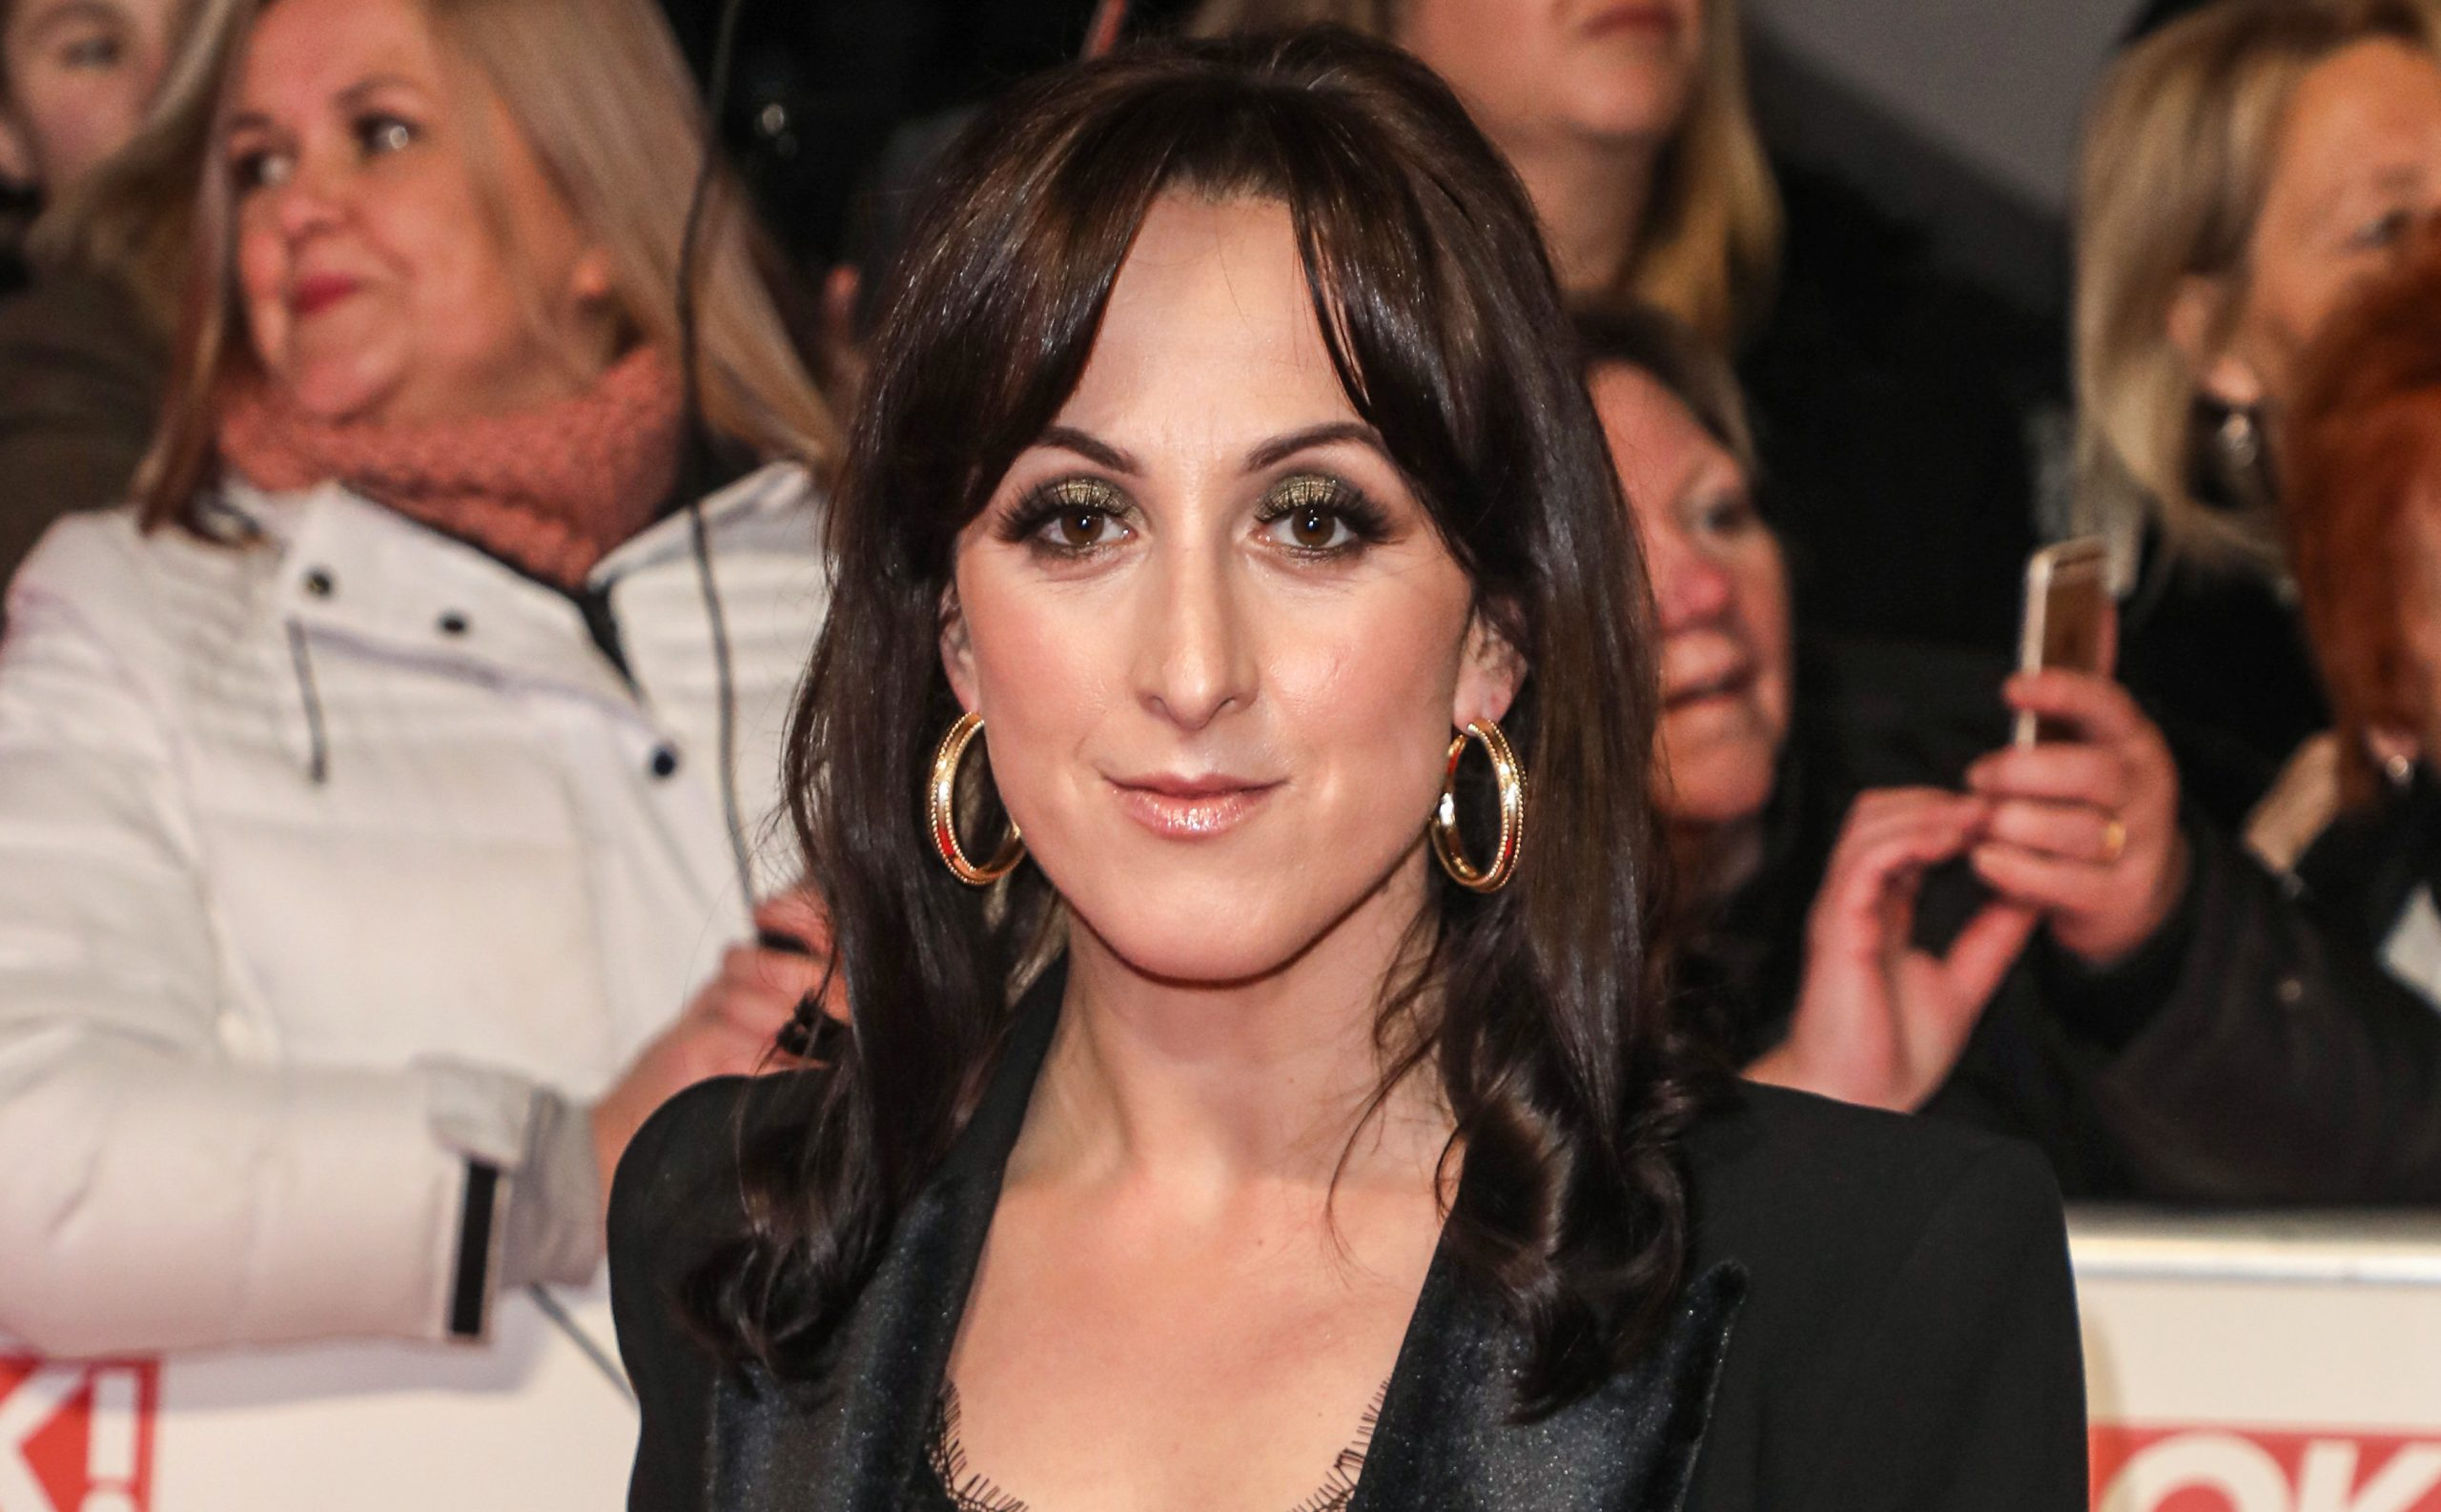 Natalie Cassidy says she's 'at ease' with her weight after slimming down to size 10